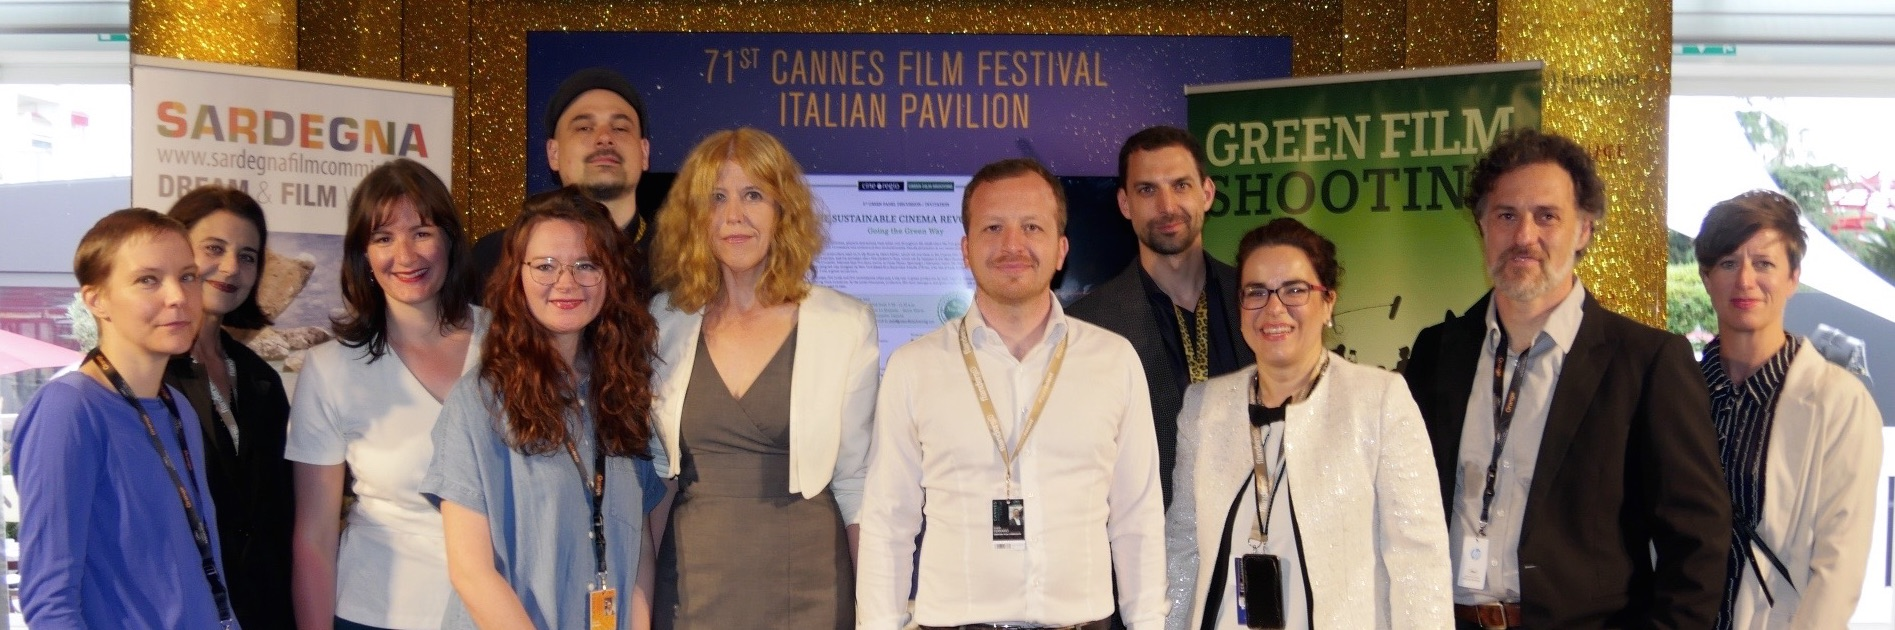 219340f9244d69 Green Film Shooting panel   Cannes Foto  © GFS. Nachhaltiger ...